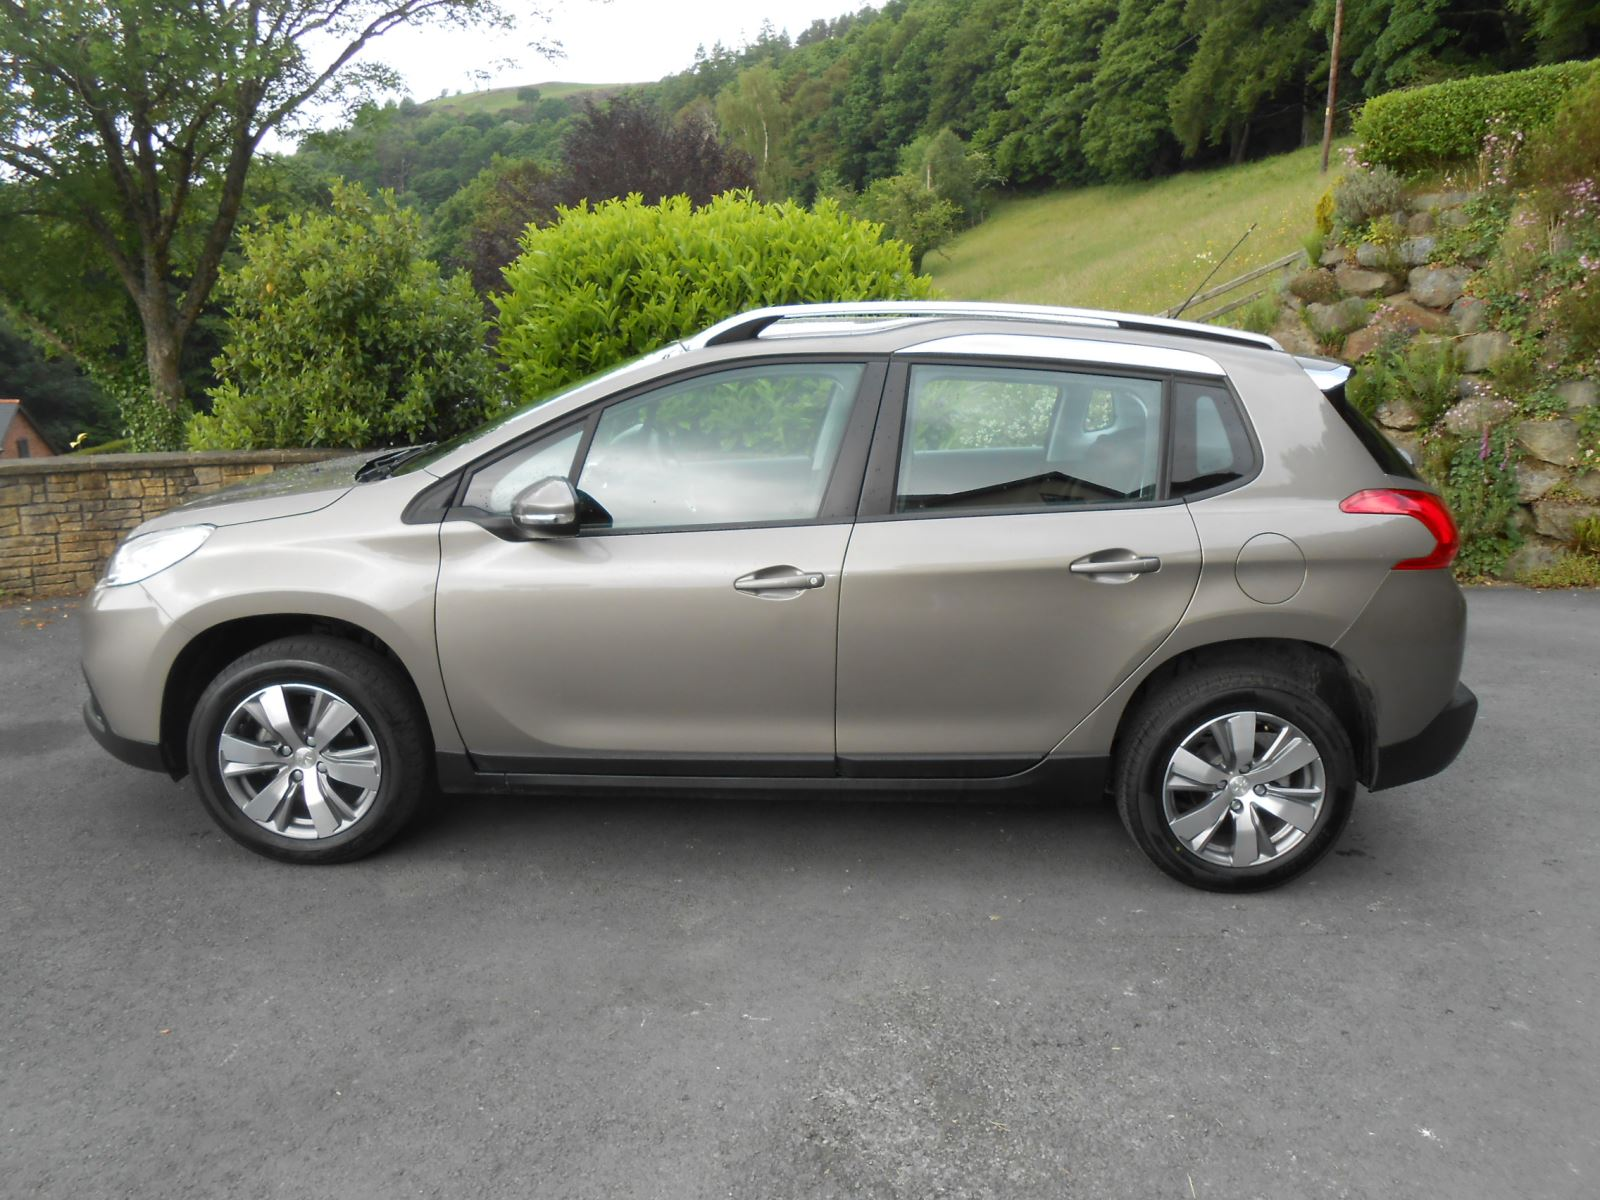 peugeot 2008 1 4 hdi active 5 door car for sale llanidloes powys mid wales kevin jones cars. Black Bedroom Furniture Sets. Home Design Ideas